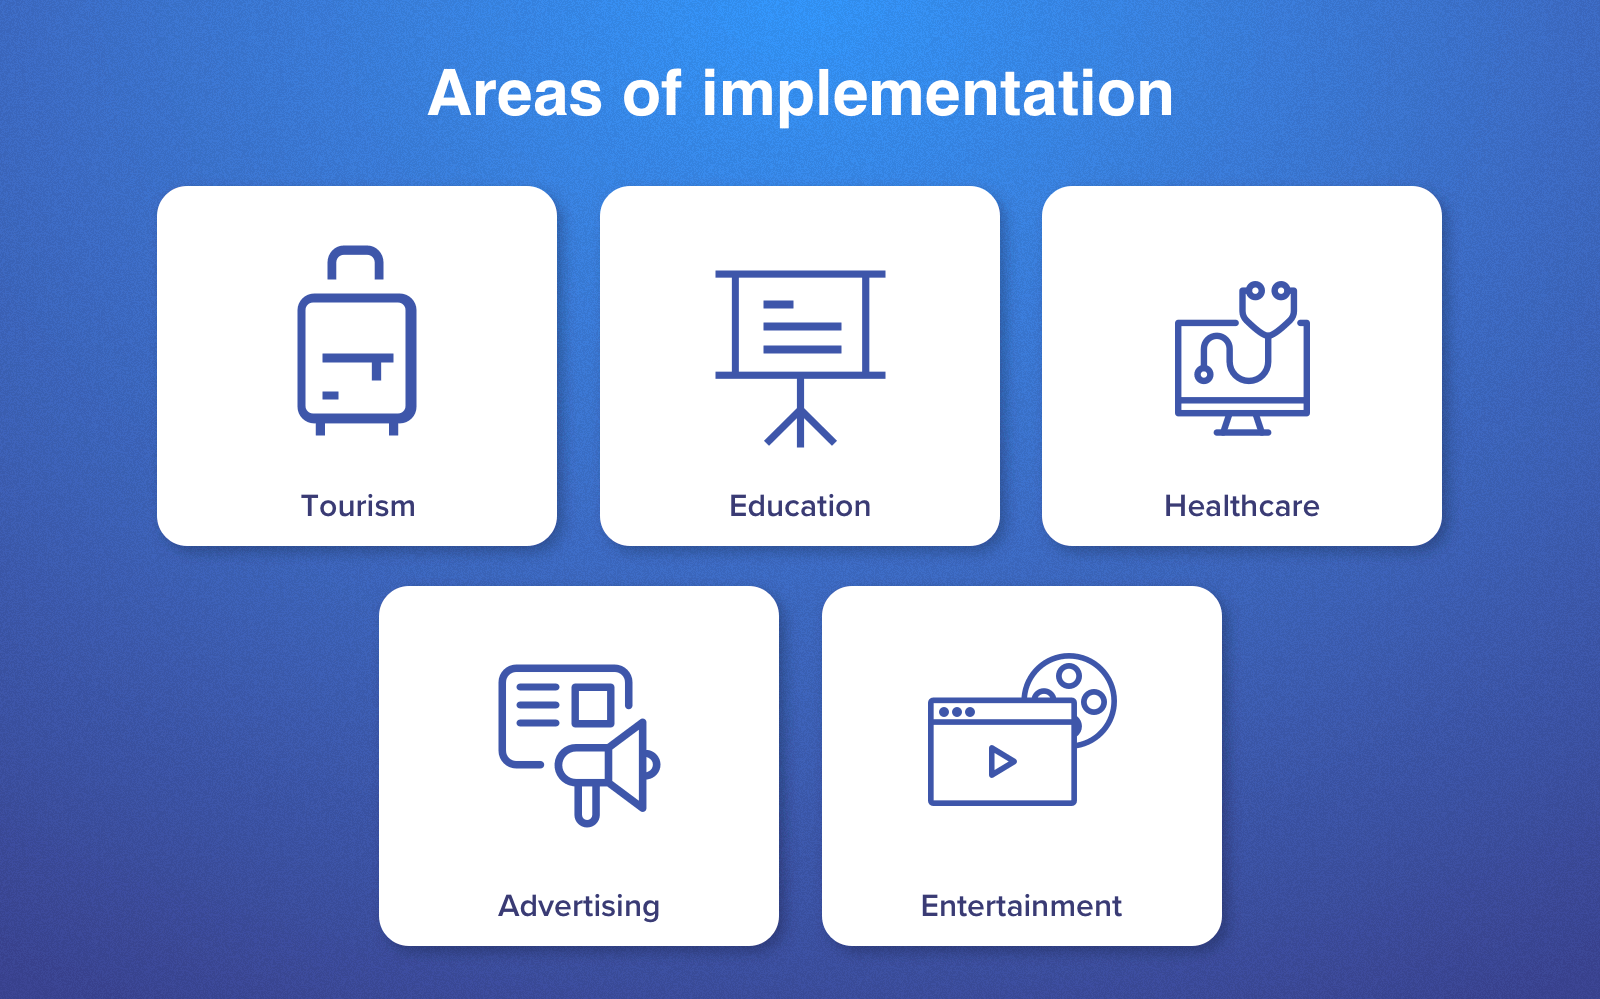 Location-based AR. Areas of implementation